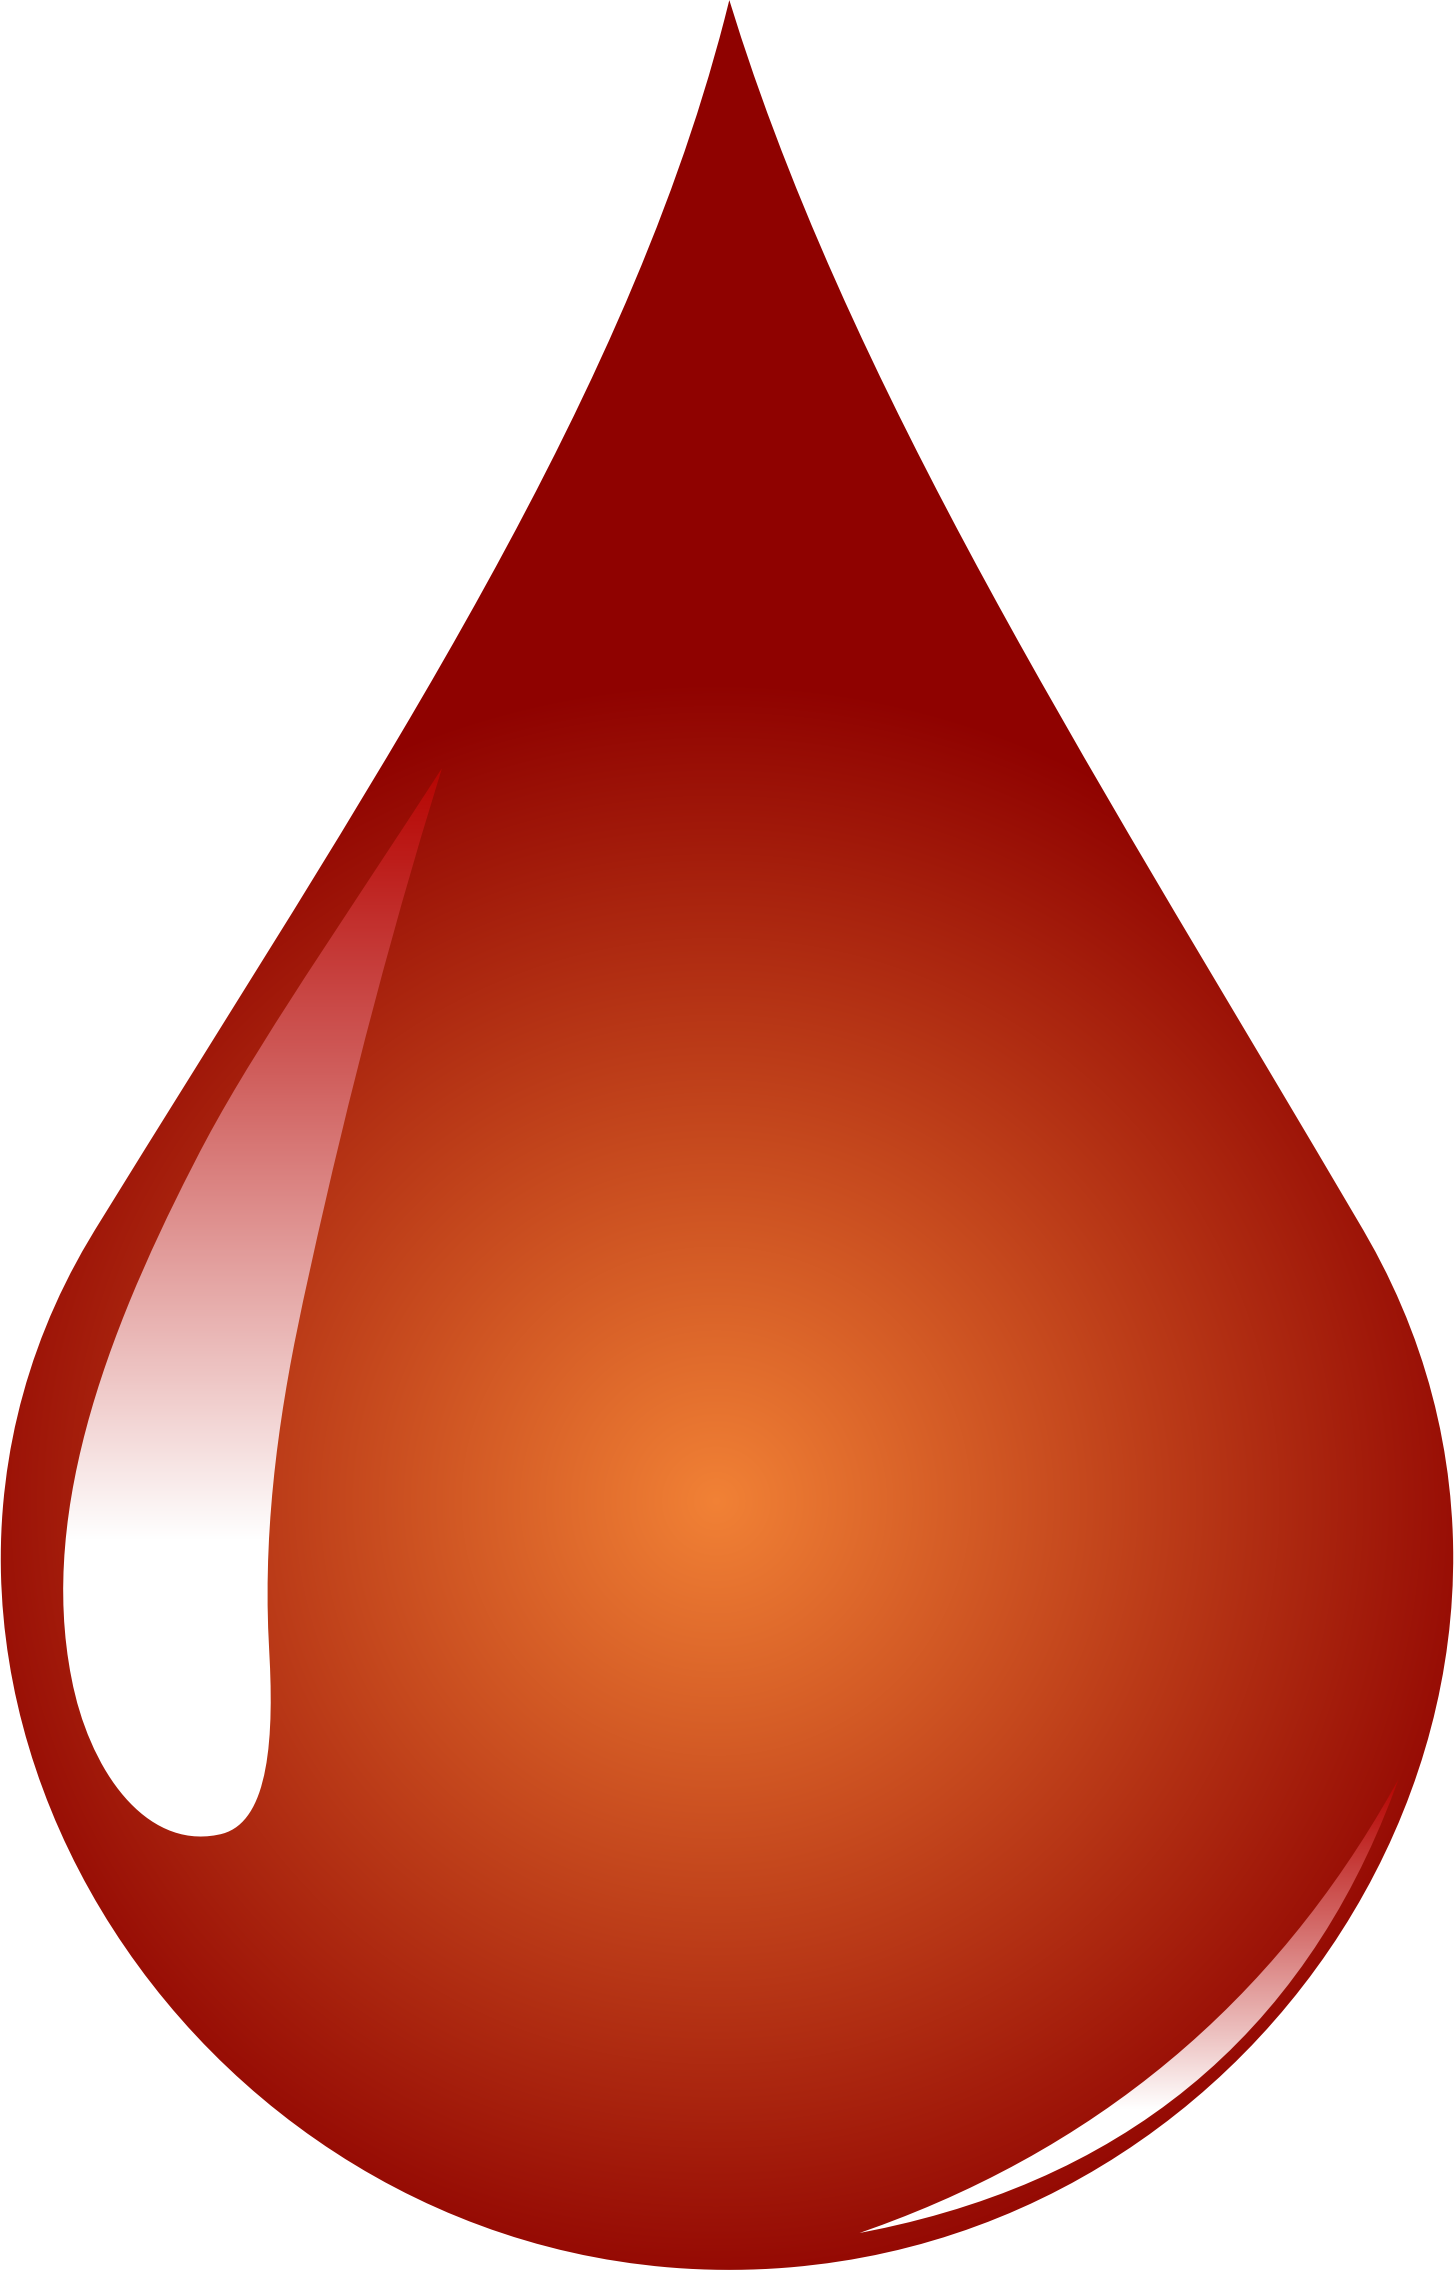 Blood Drop by GDJ